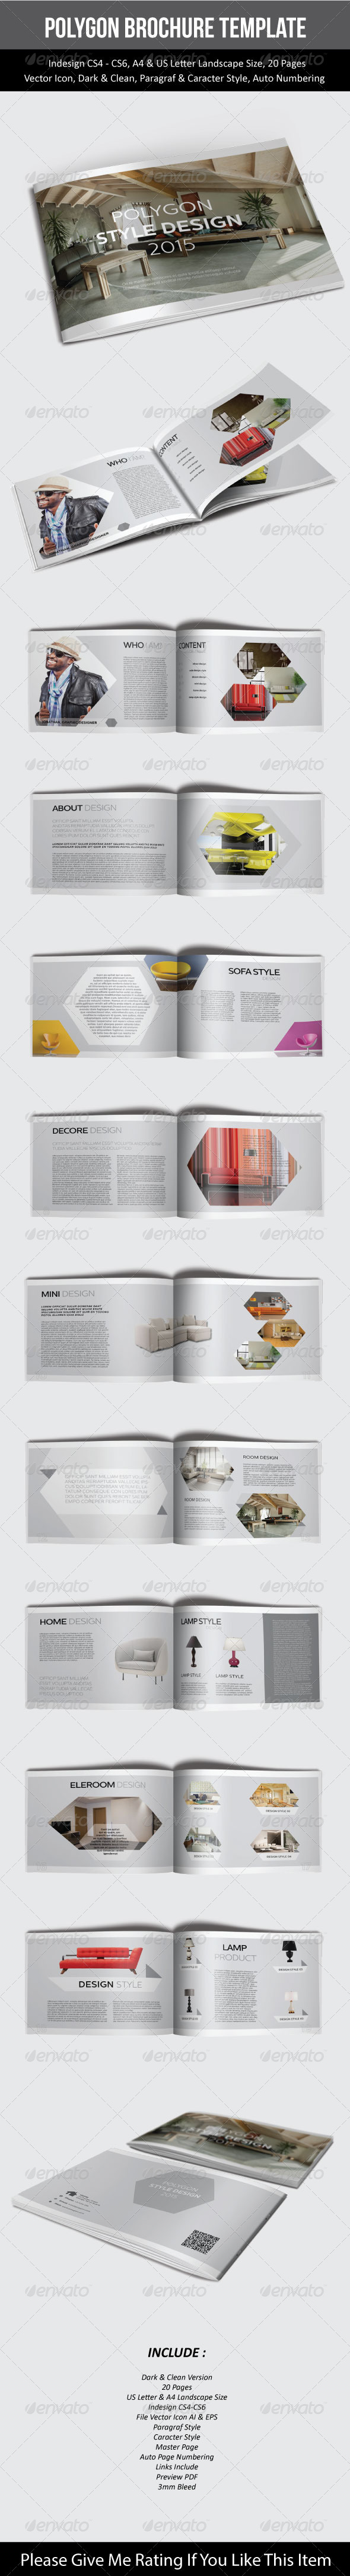 GraphicRiver Polygon Brochure Template 7531881